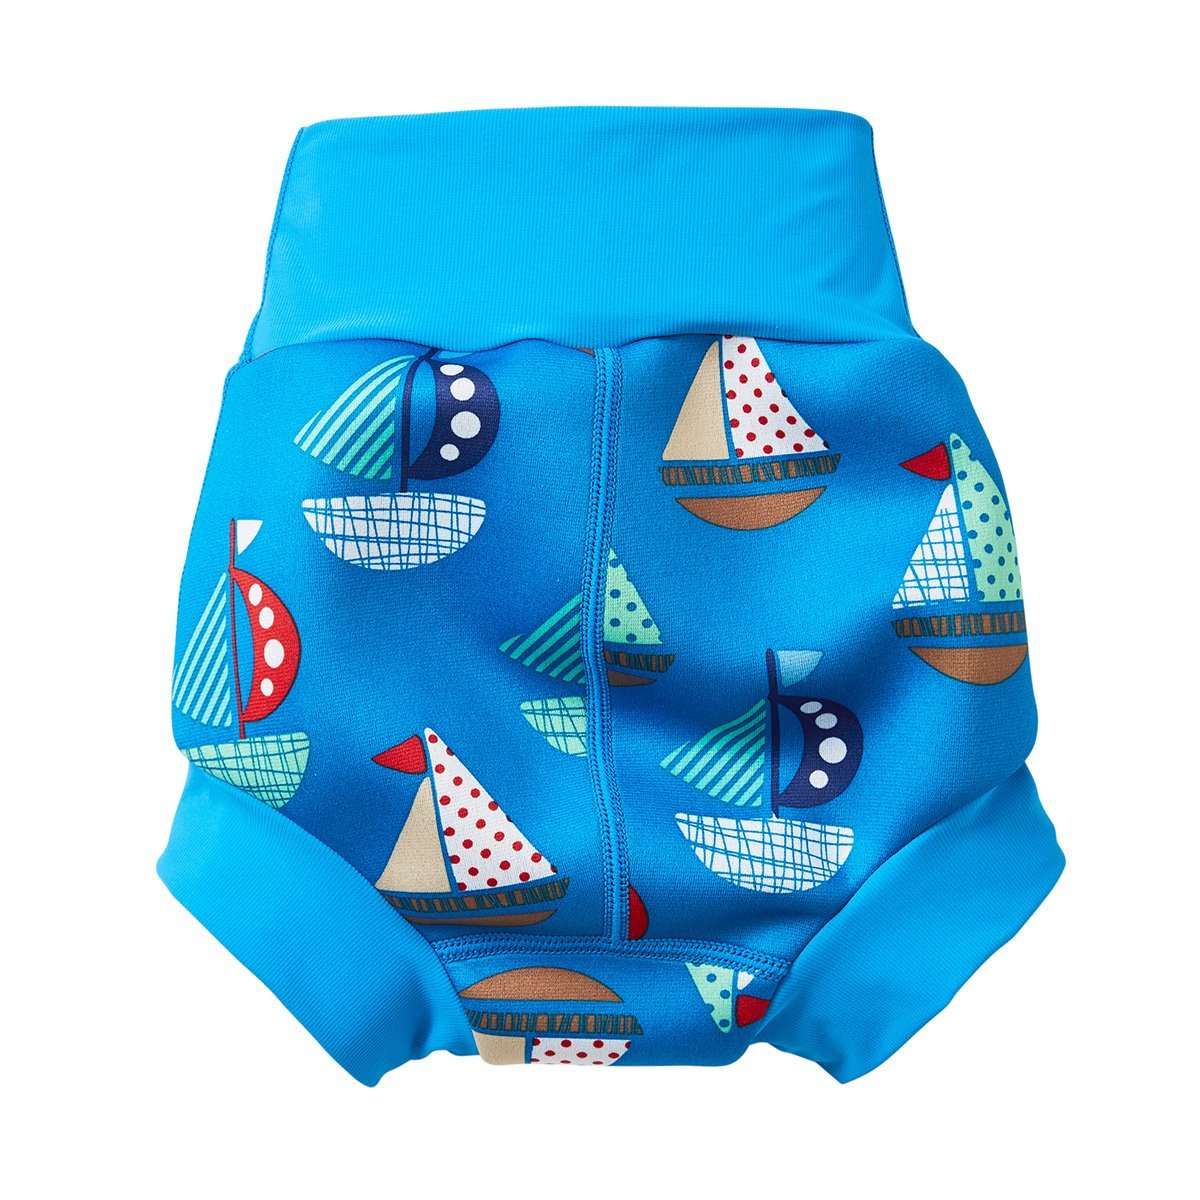 Splash About Happy Nappy Shark Orange Reusable Swim Nappy Baby New Spare No Cost At Any Cost